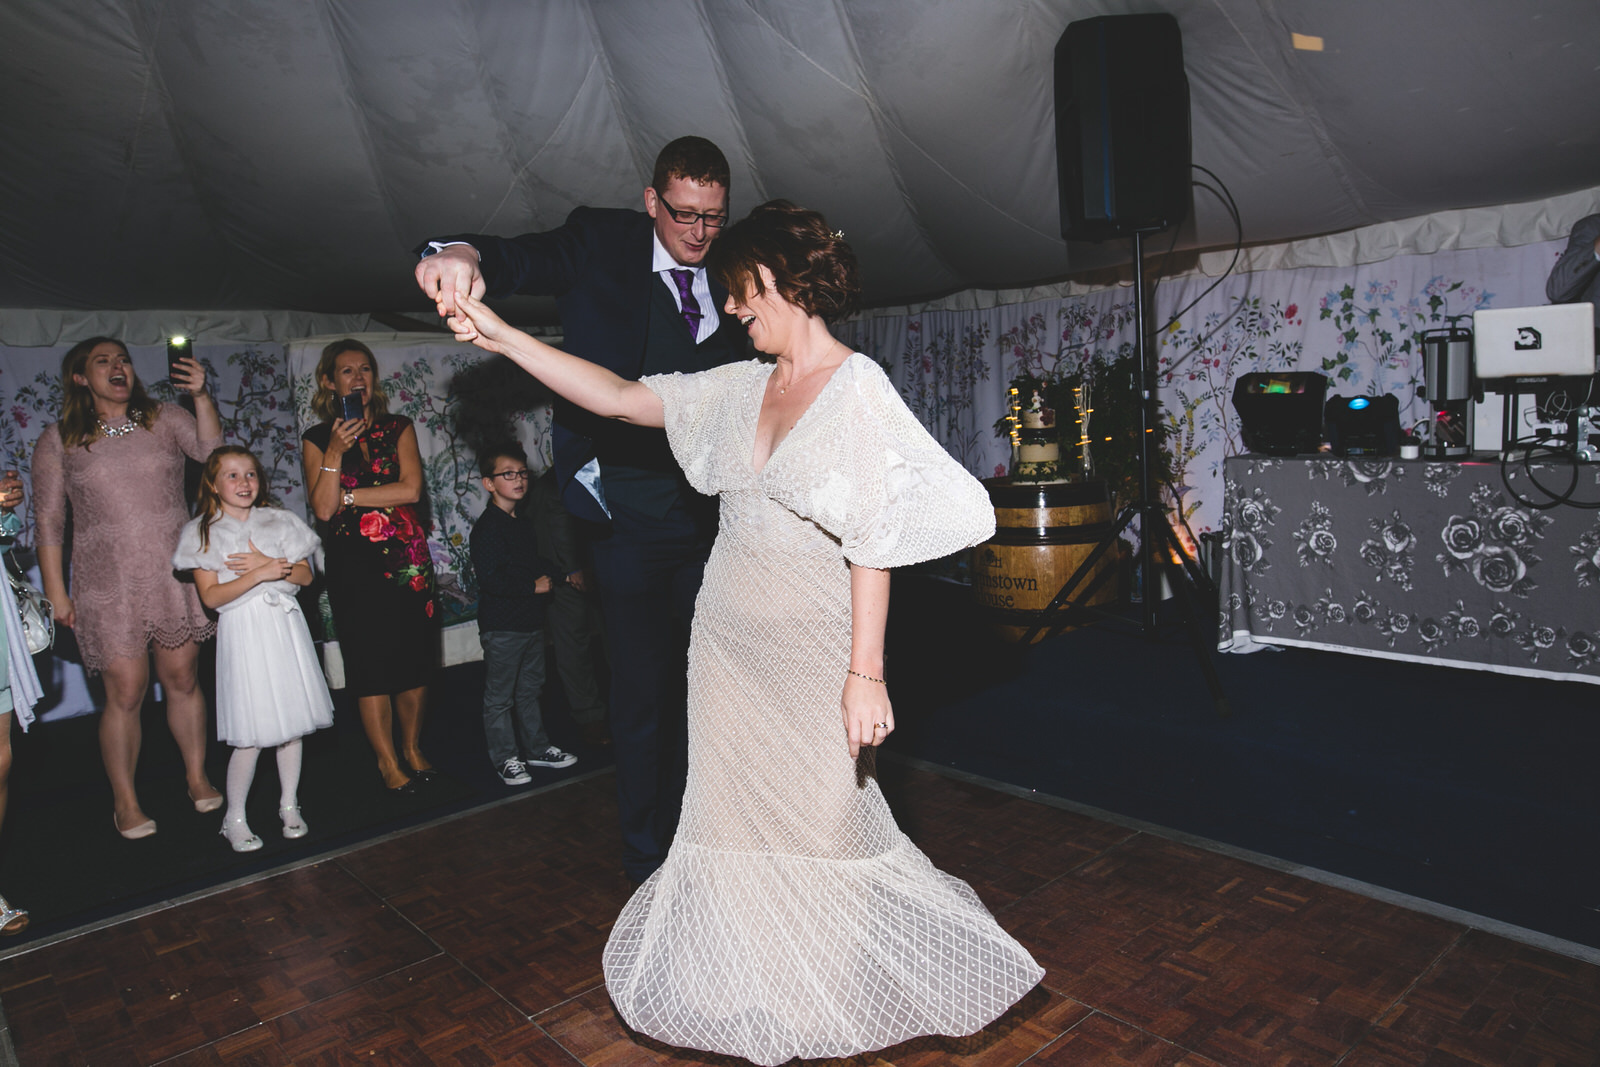 Twirls during the first dance